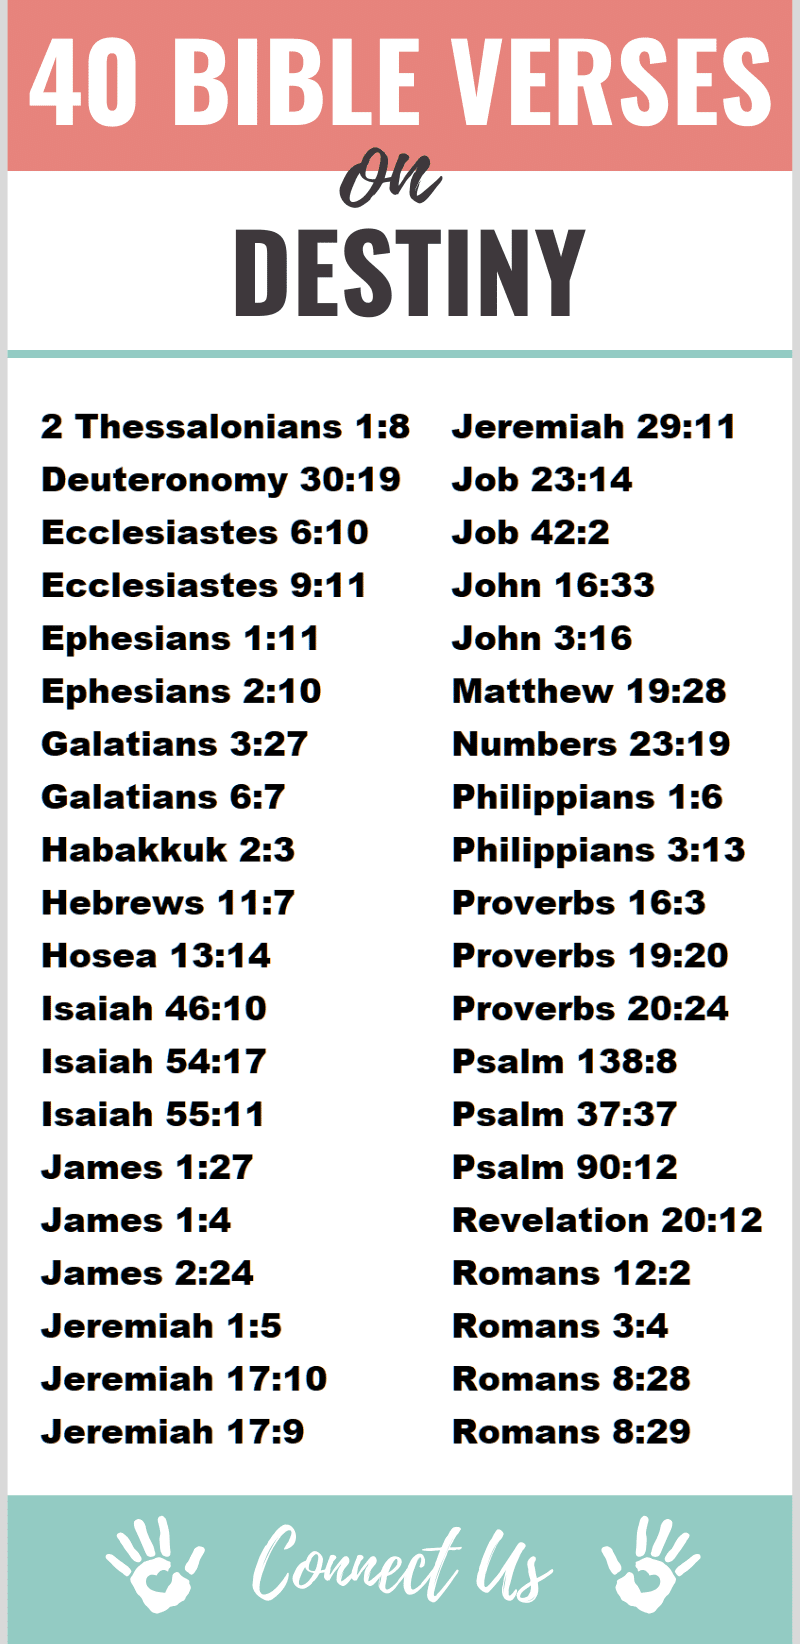 Bible Verses on Destiny